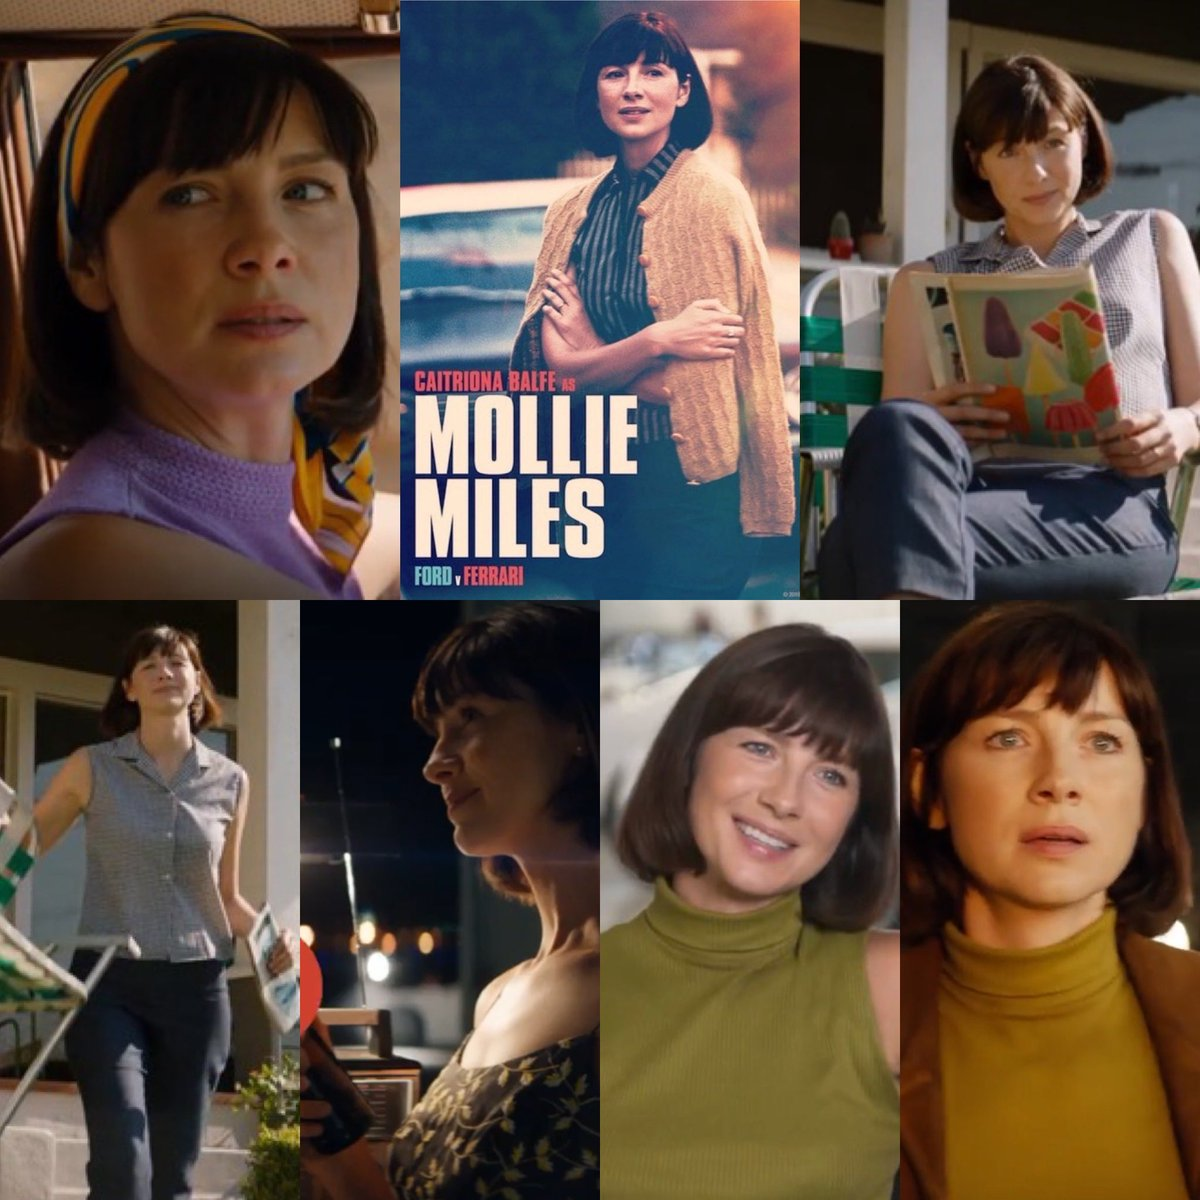 Caitríona Balfe On Twitter What Do You Mean You Haven T Gone To See Fordvferrari Yet Lemans66 Is In Theatres Now See What S Got Molllie All Riled Up 20thcenturyfox Https T Co Y4aegcej0k